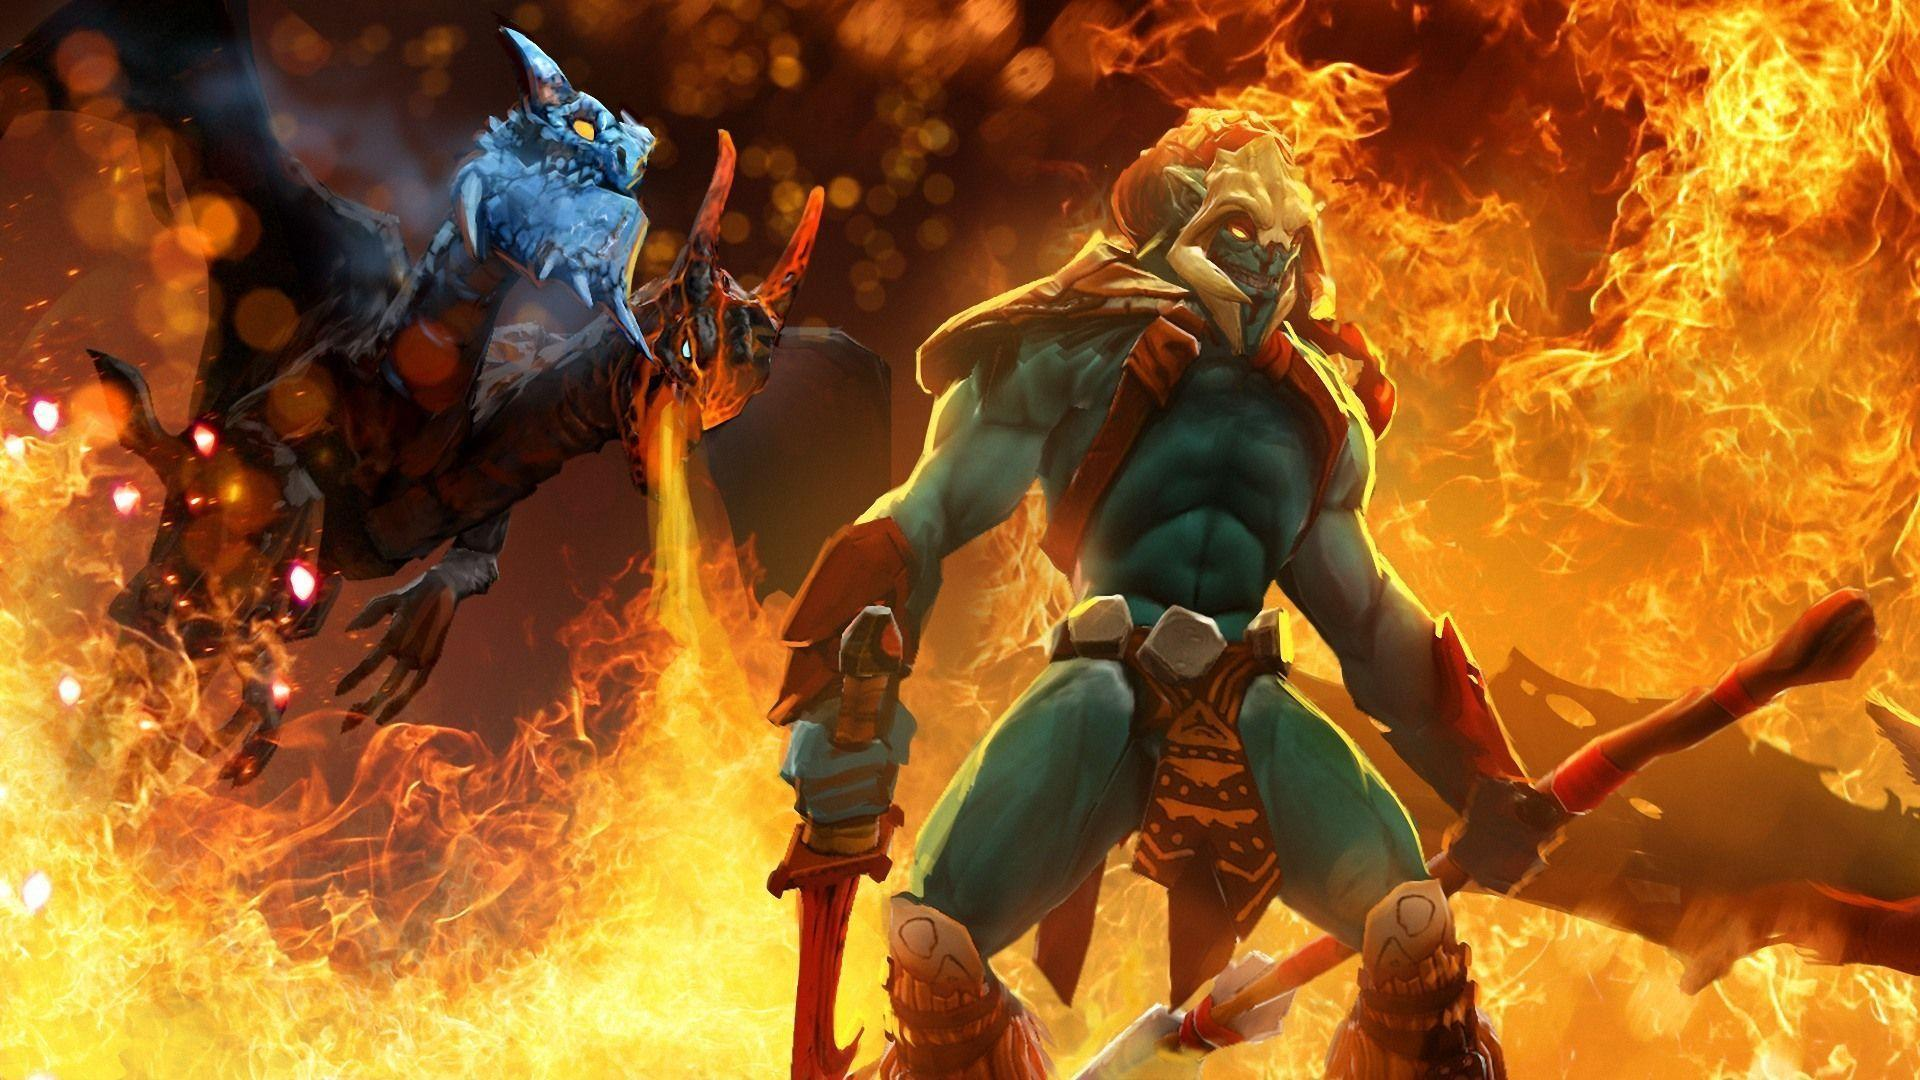 dota 2 game background - photo #5